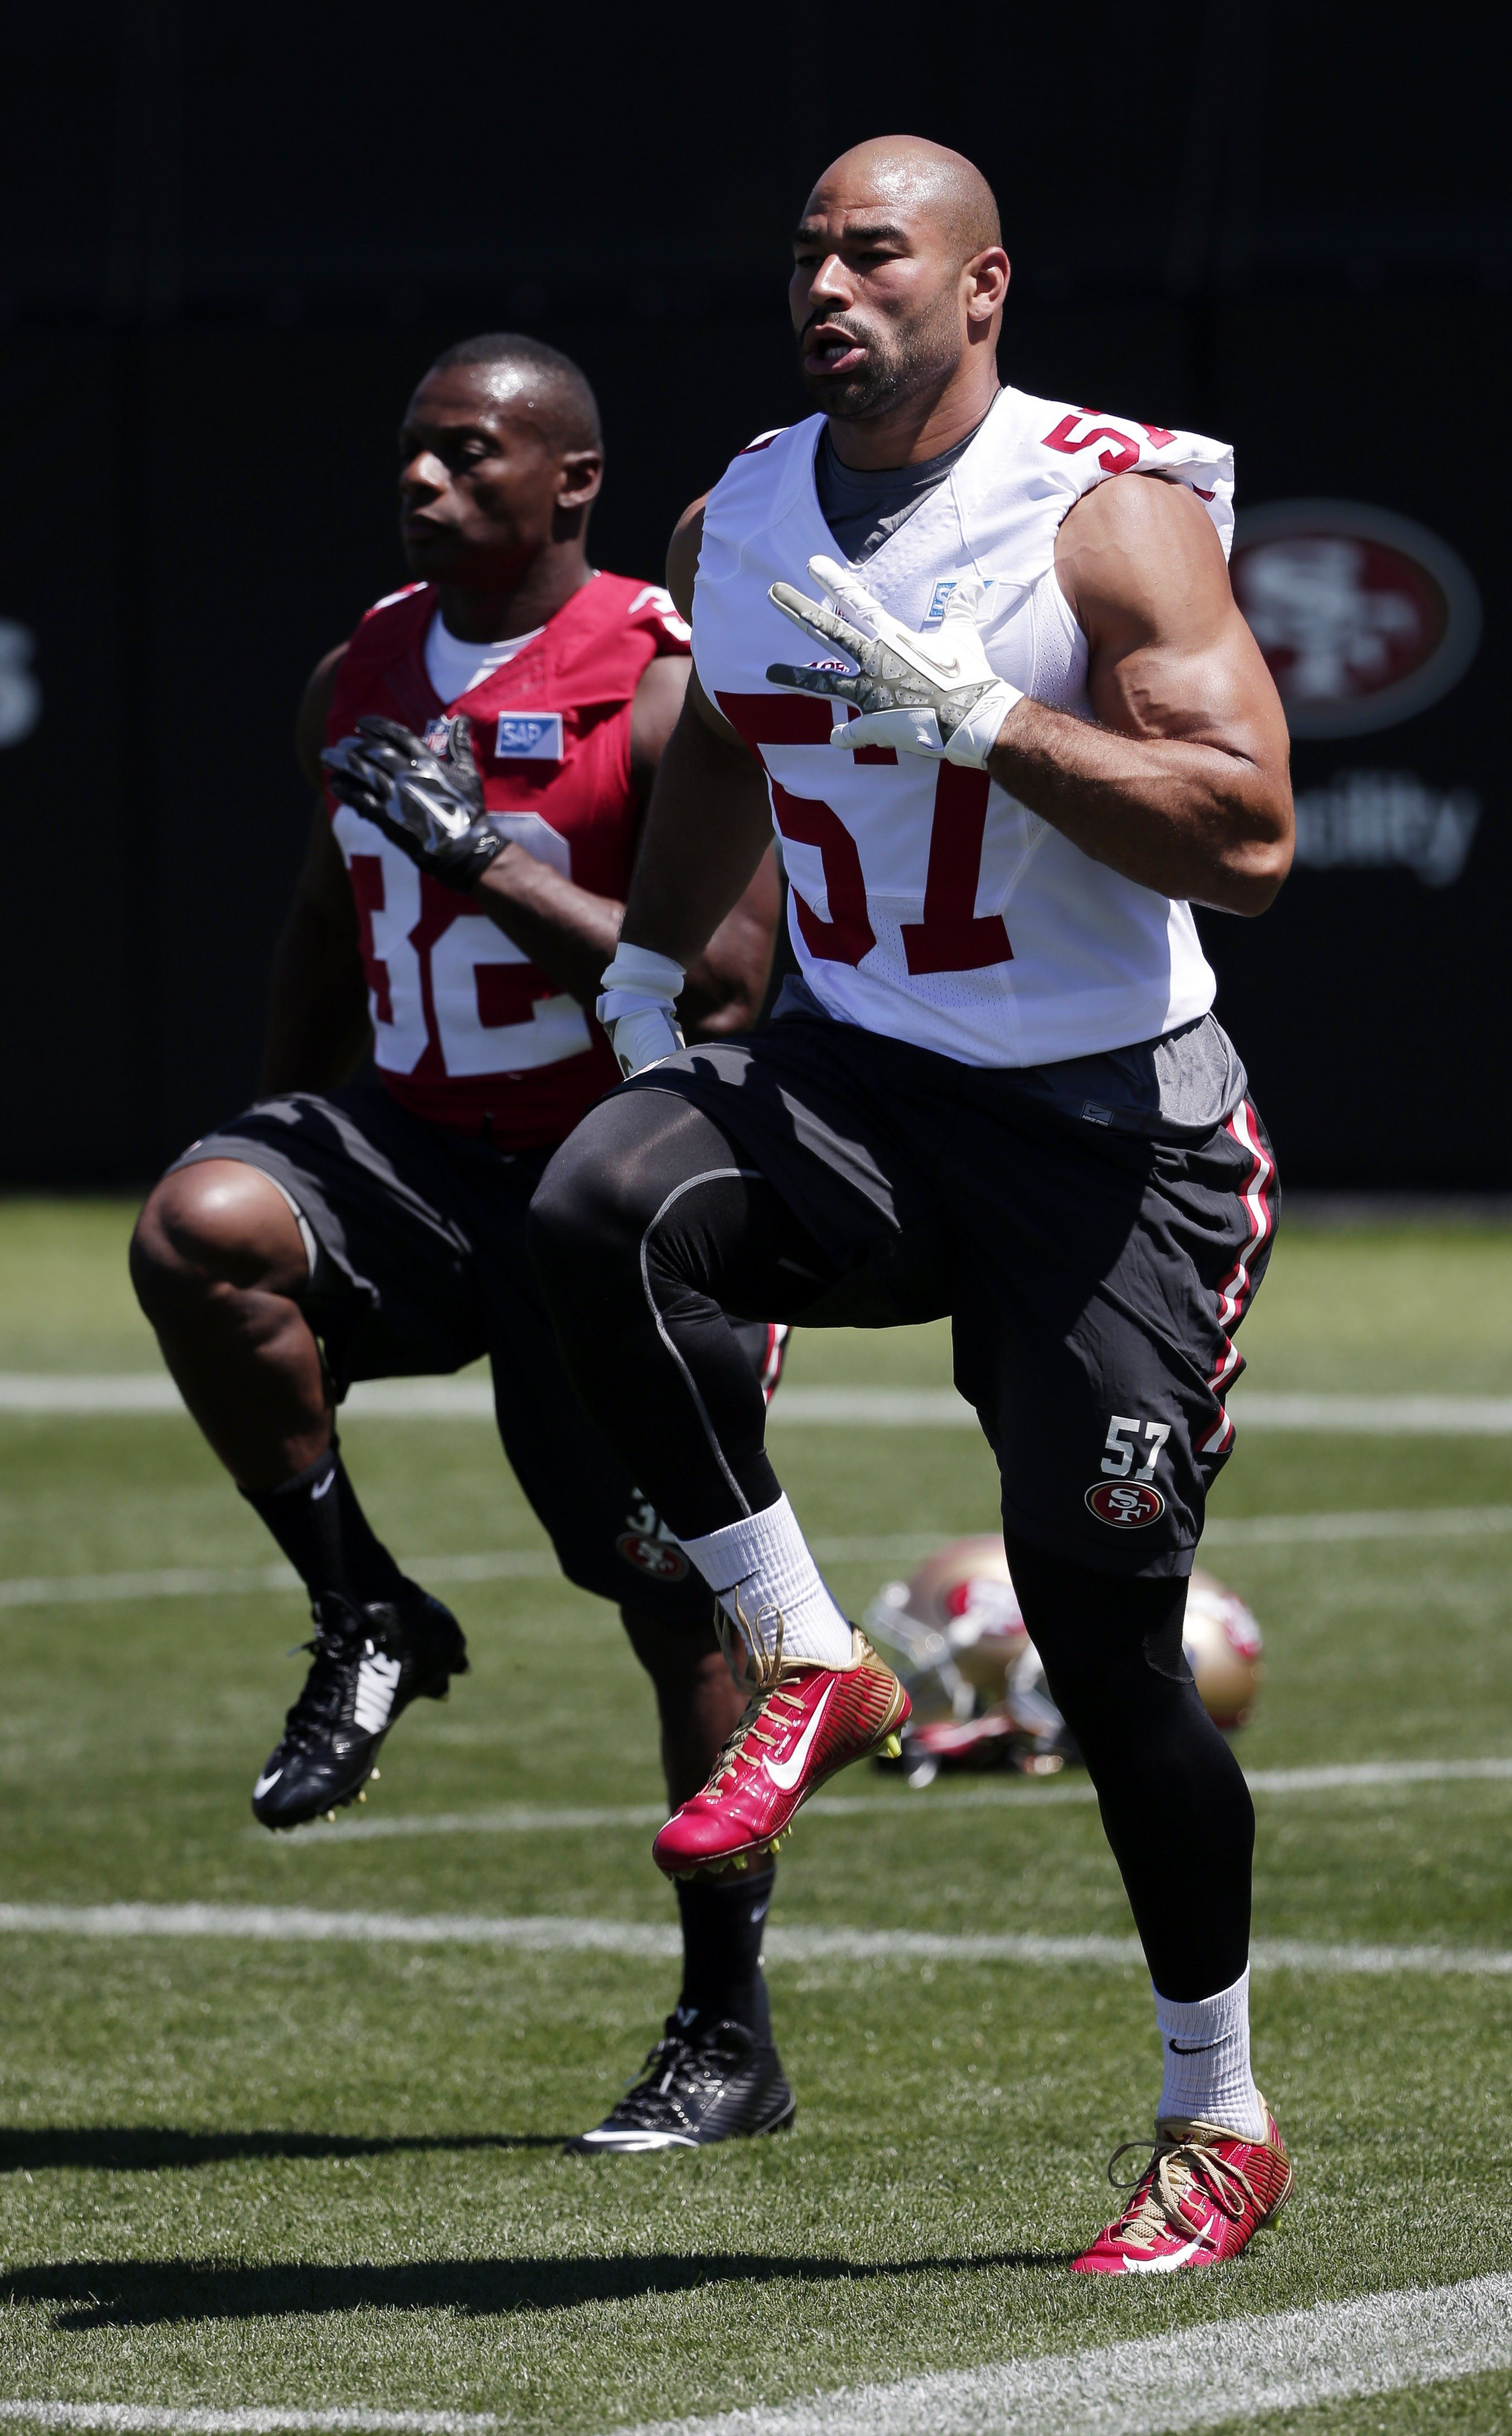 AP PhotoSan Francisco 49ers linebacker Michael Wihoite (57) warms up next to teammate Kendall Hunter (32) during an NFL football training camp on Friday